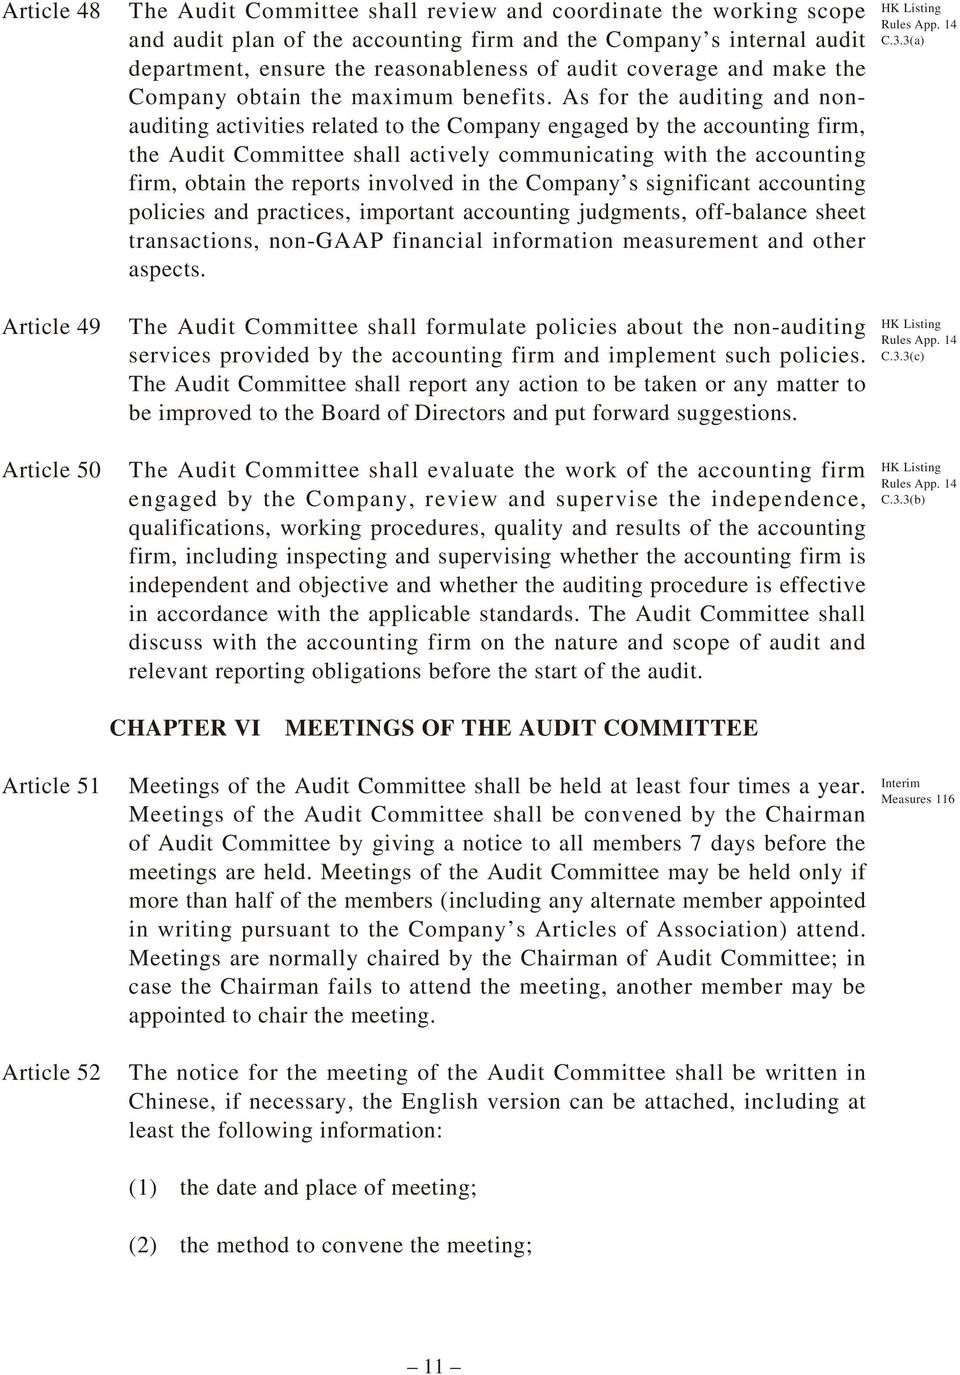 As for the auditing and nonauditing activities related to the Company engaged by the accounting firm, the Audit Committee shall actively communicating with the accounting firm, obtain the reports